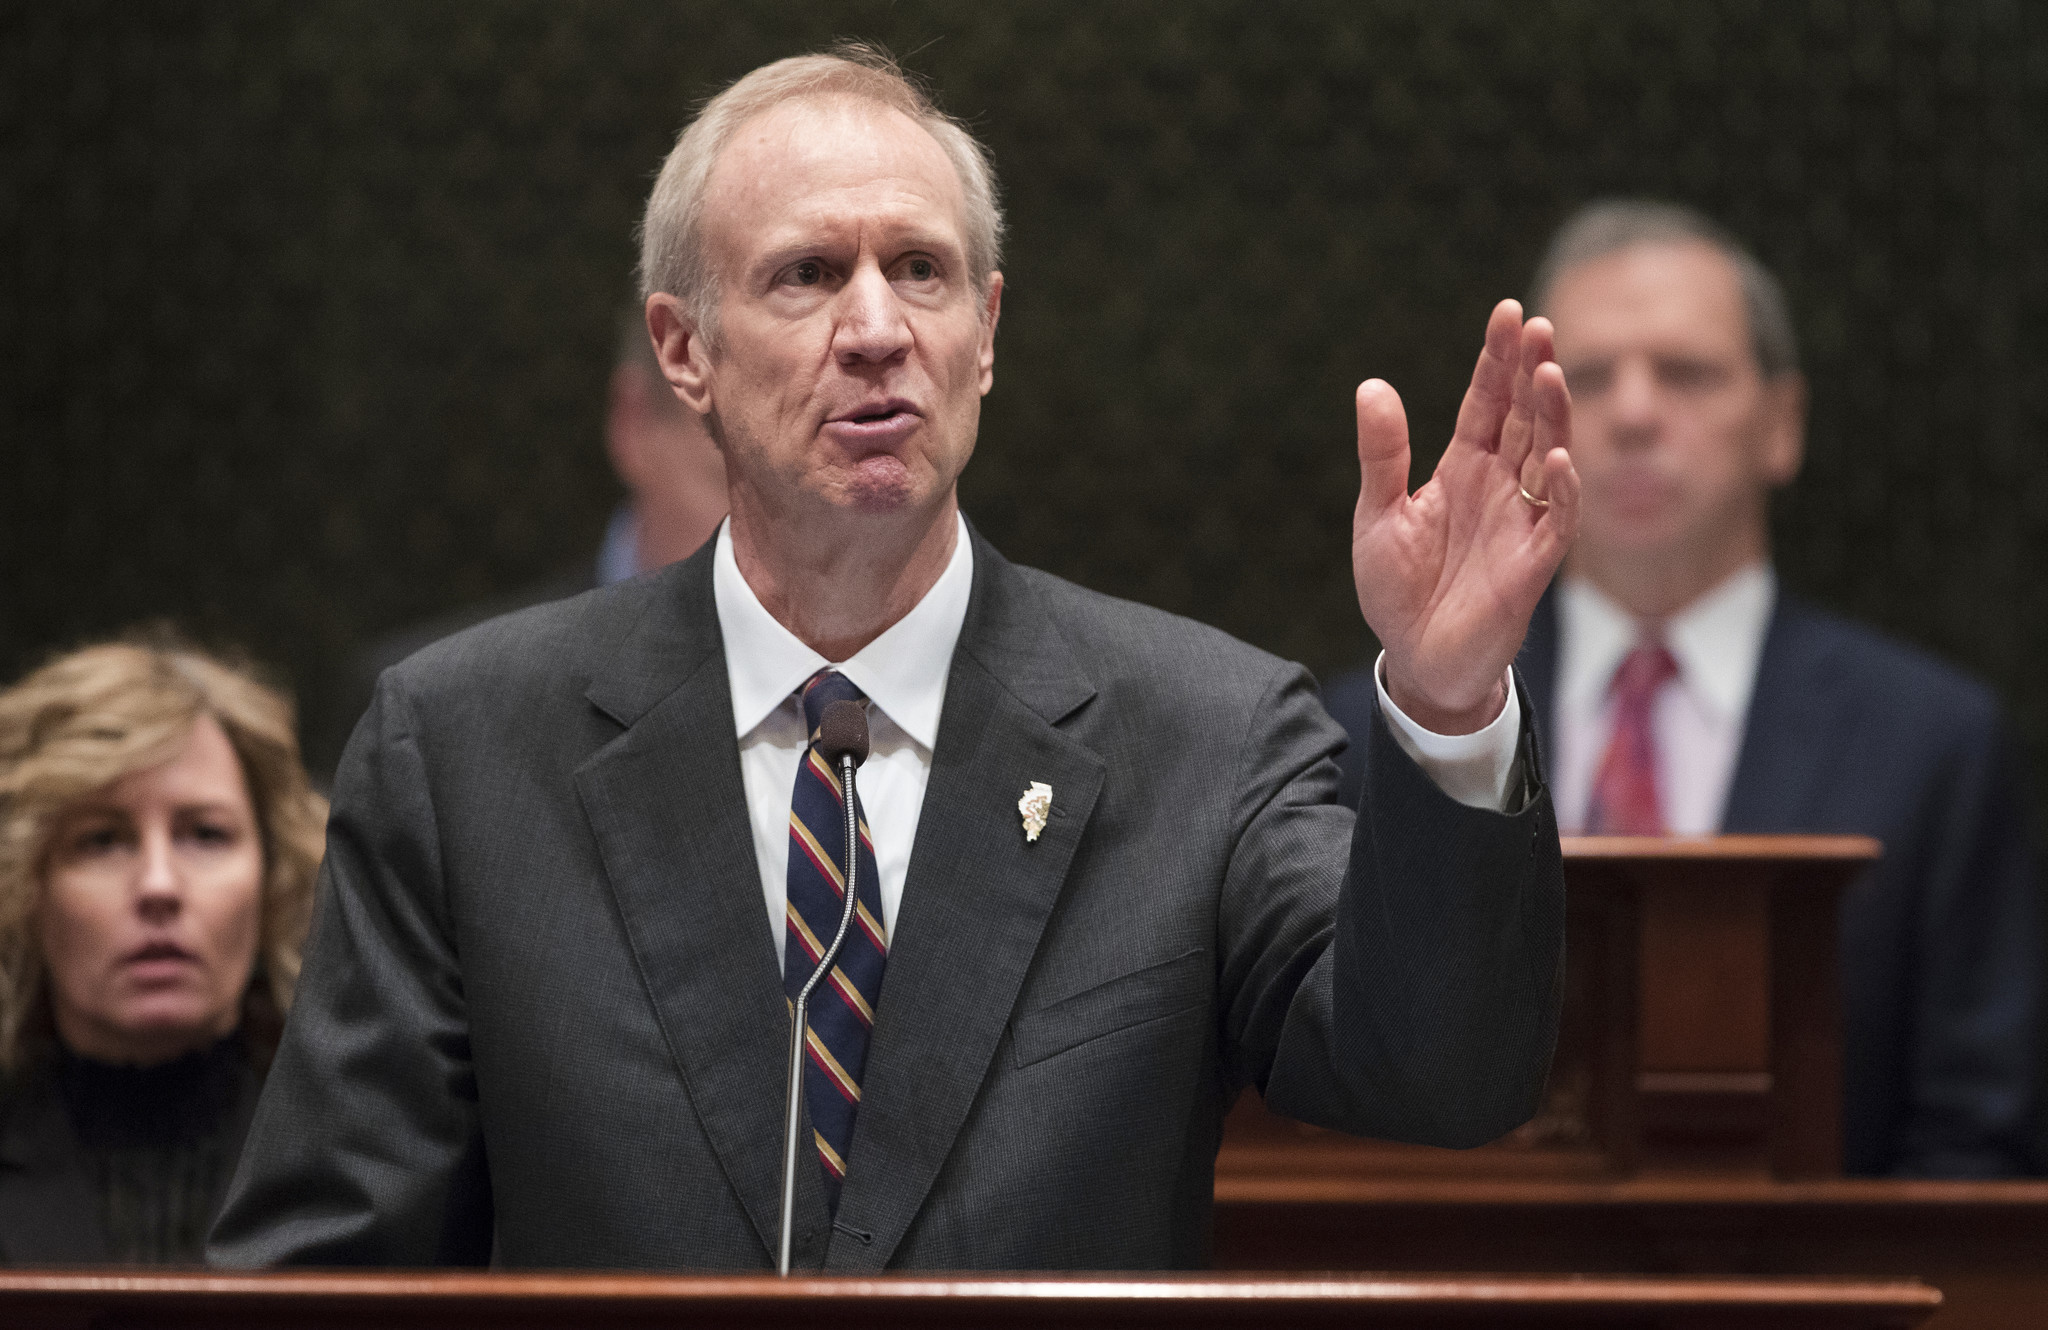 rauner essay In a special essay for the daily herald, republican candidate for illinois governor bruce rauner outlines the economic policies of his campaign.